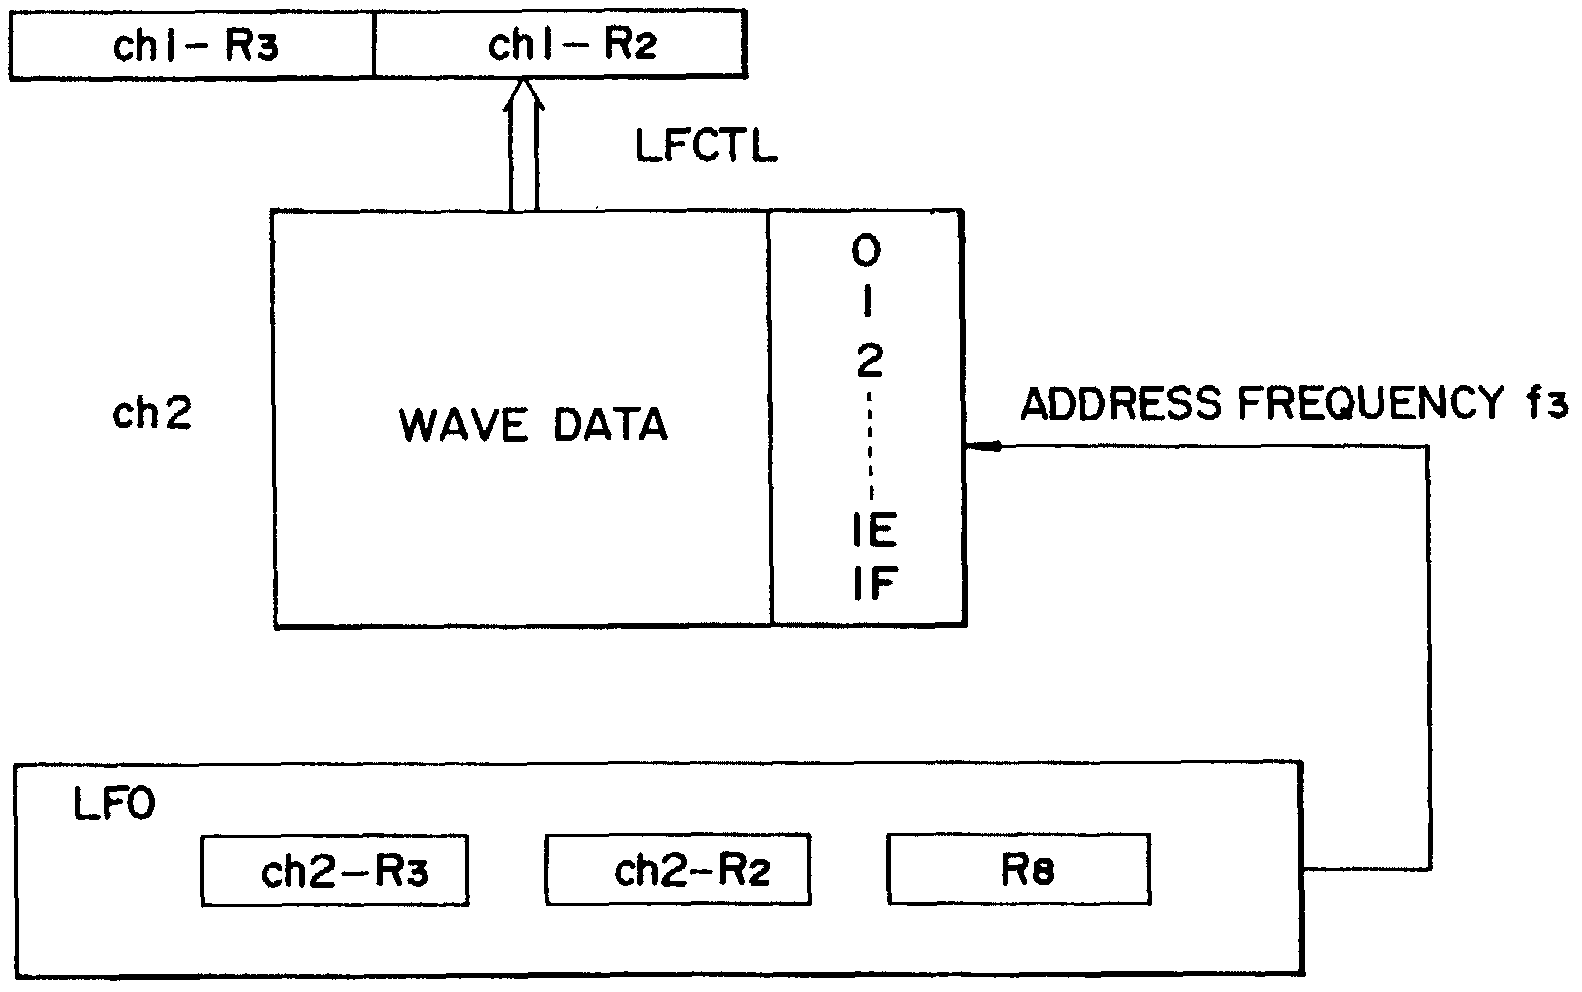 US4924744-fig8.png